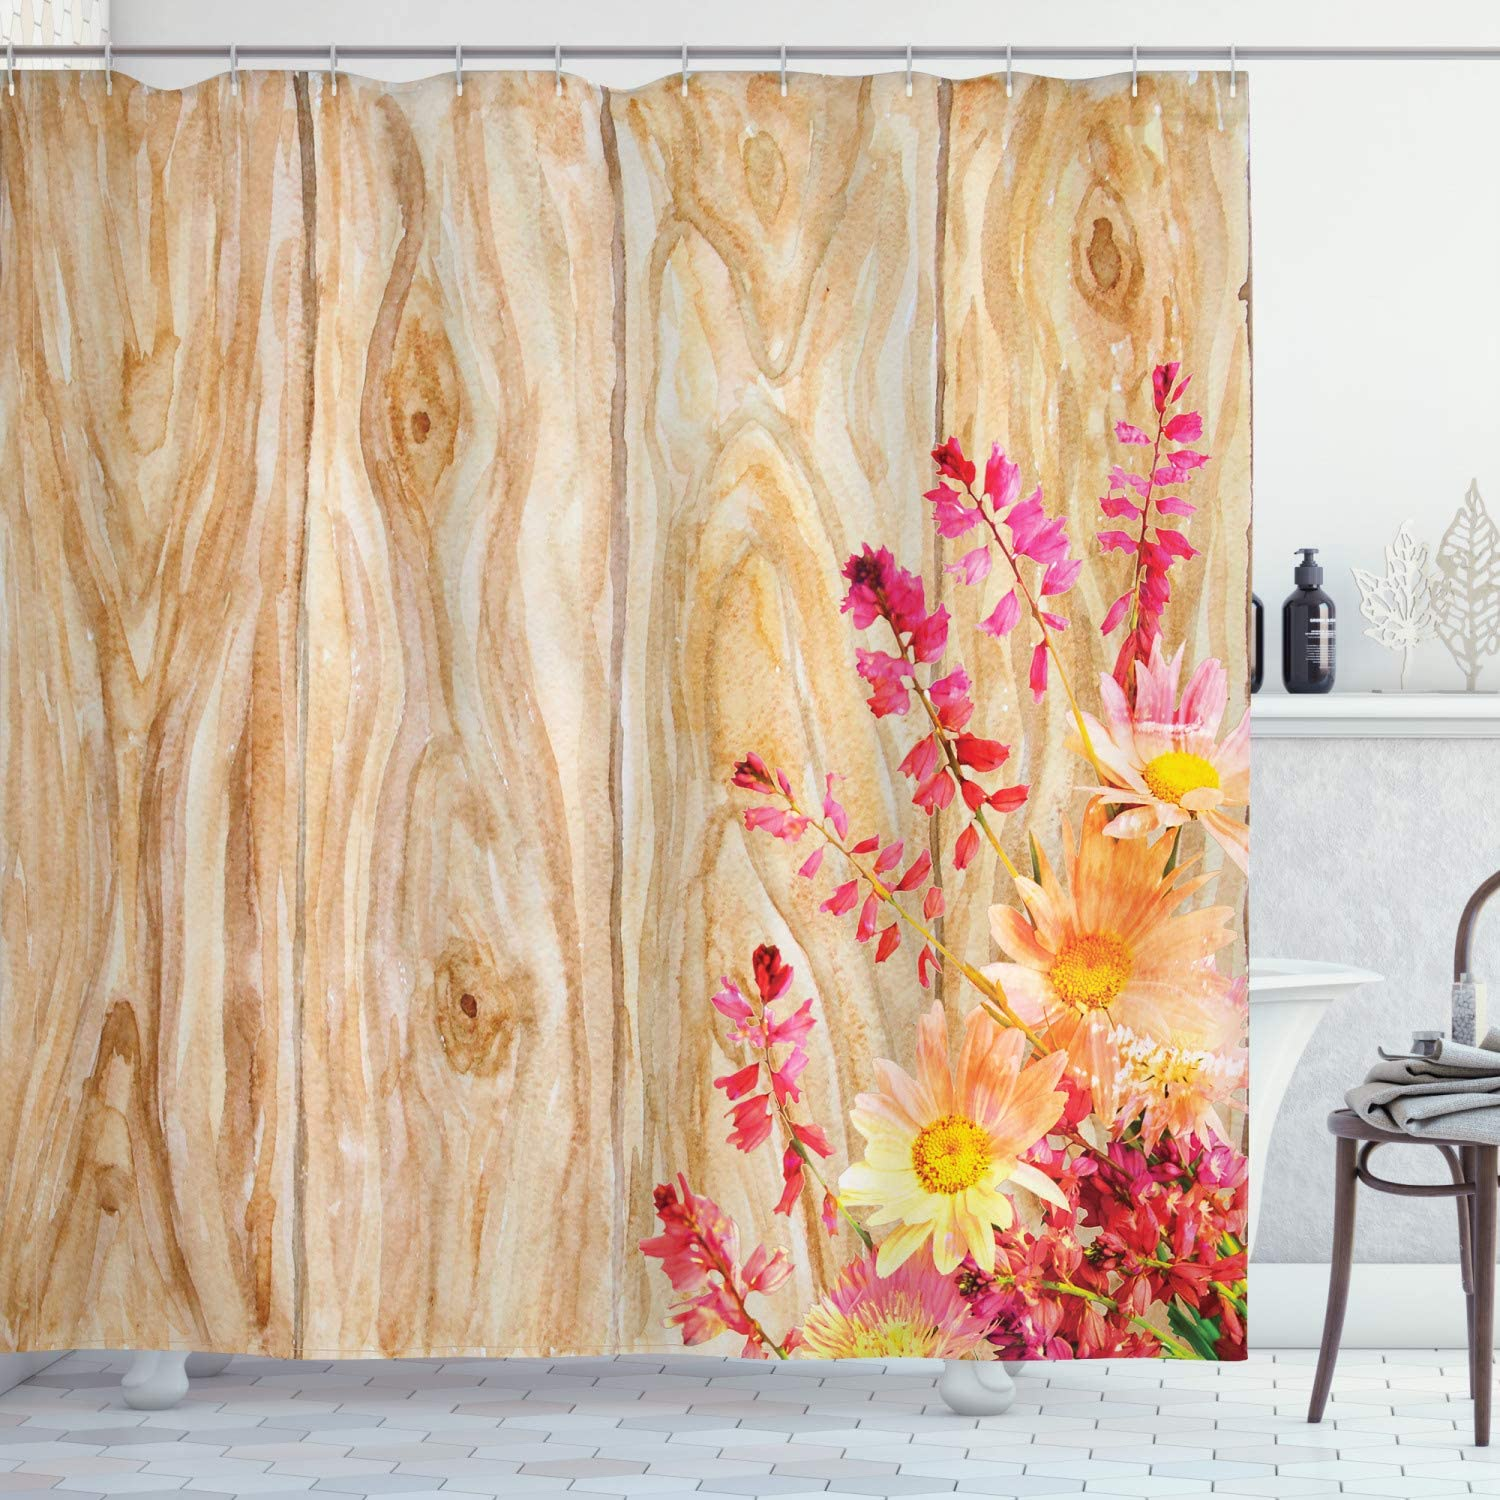 Ambesonne Rustic Home Decor Shower Curtain, Watercolor Bouquet of Wild Flowers Daisy Floral Beauty in Spring Theme Image, Fabric Bathroom Decor Set with Hooks, 70 Inches, Multi